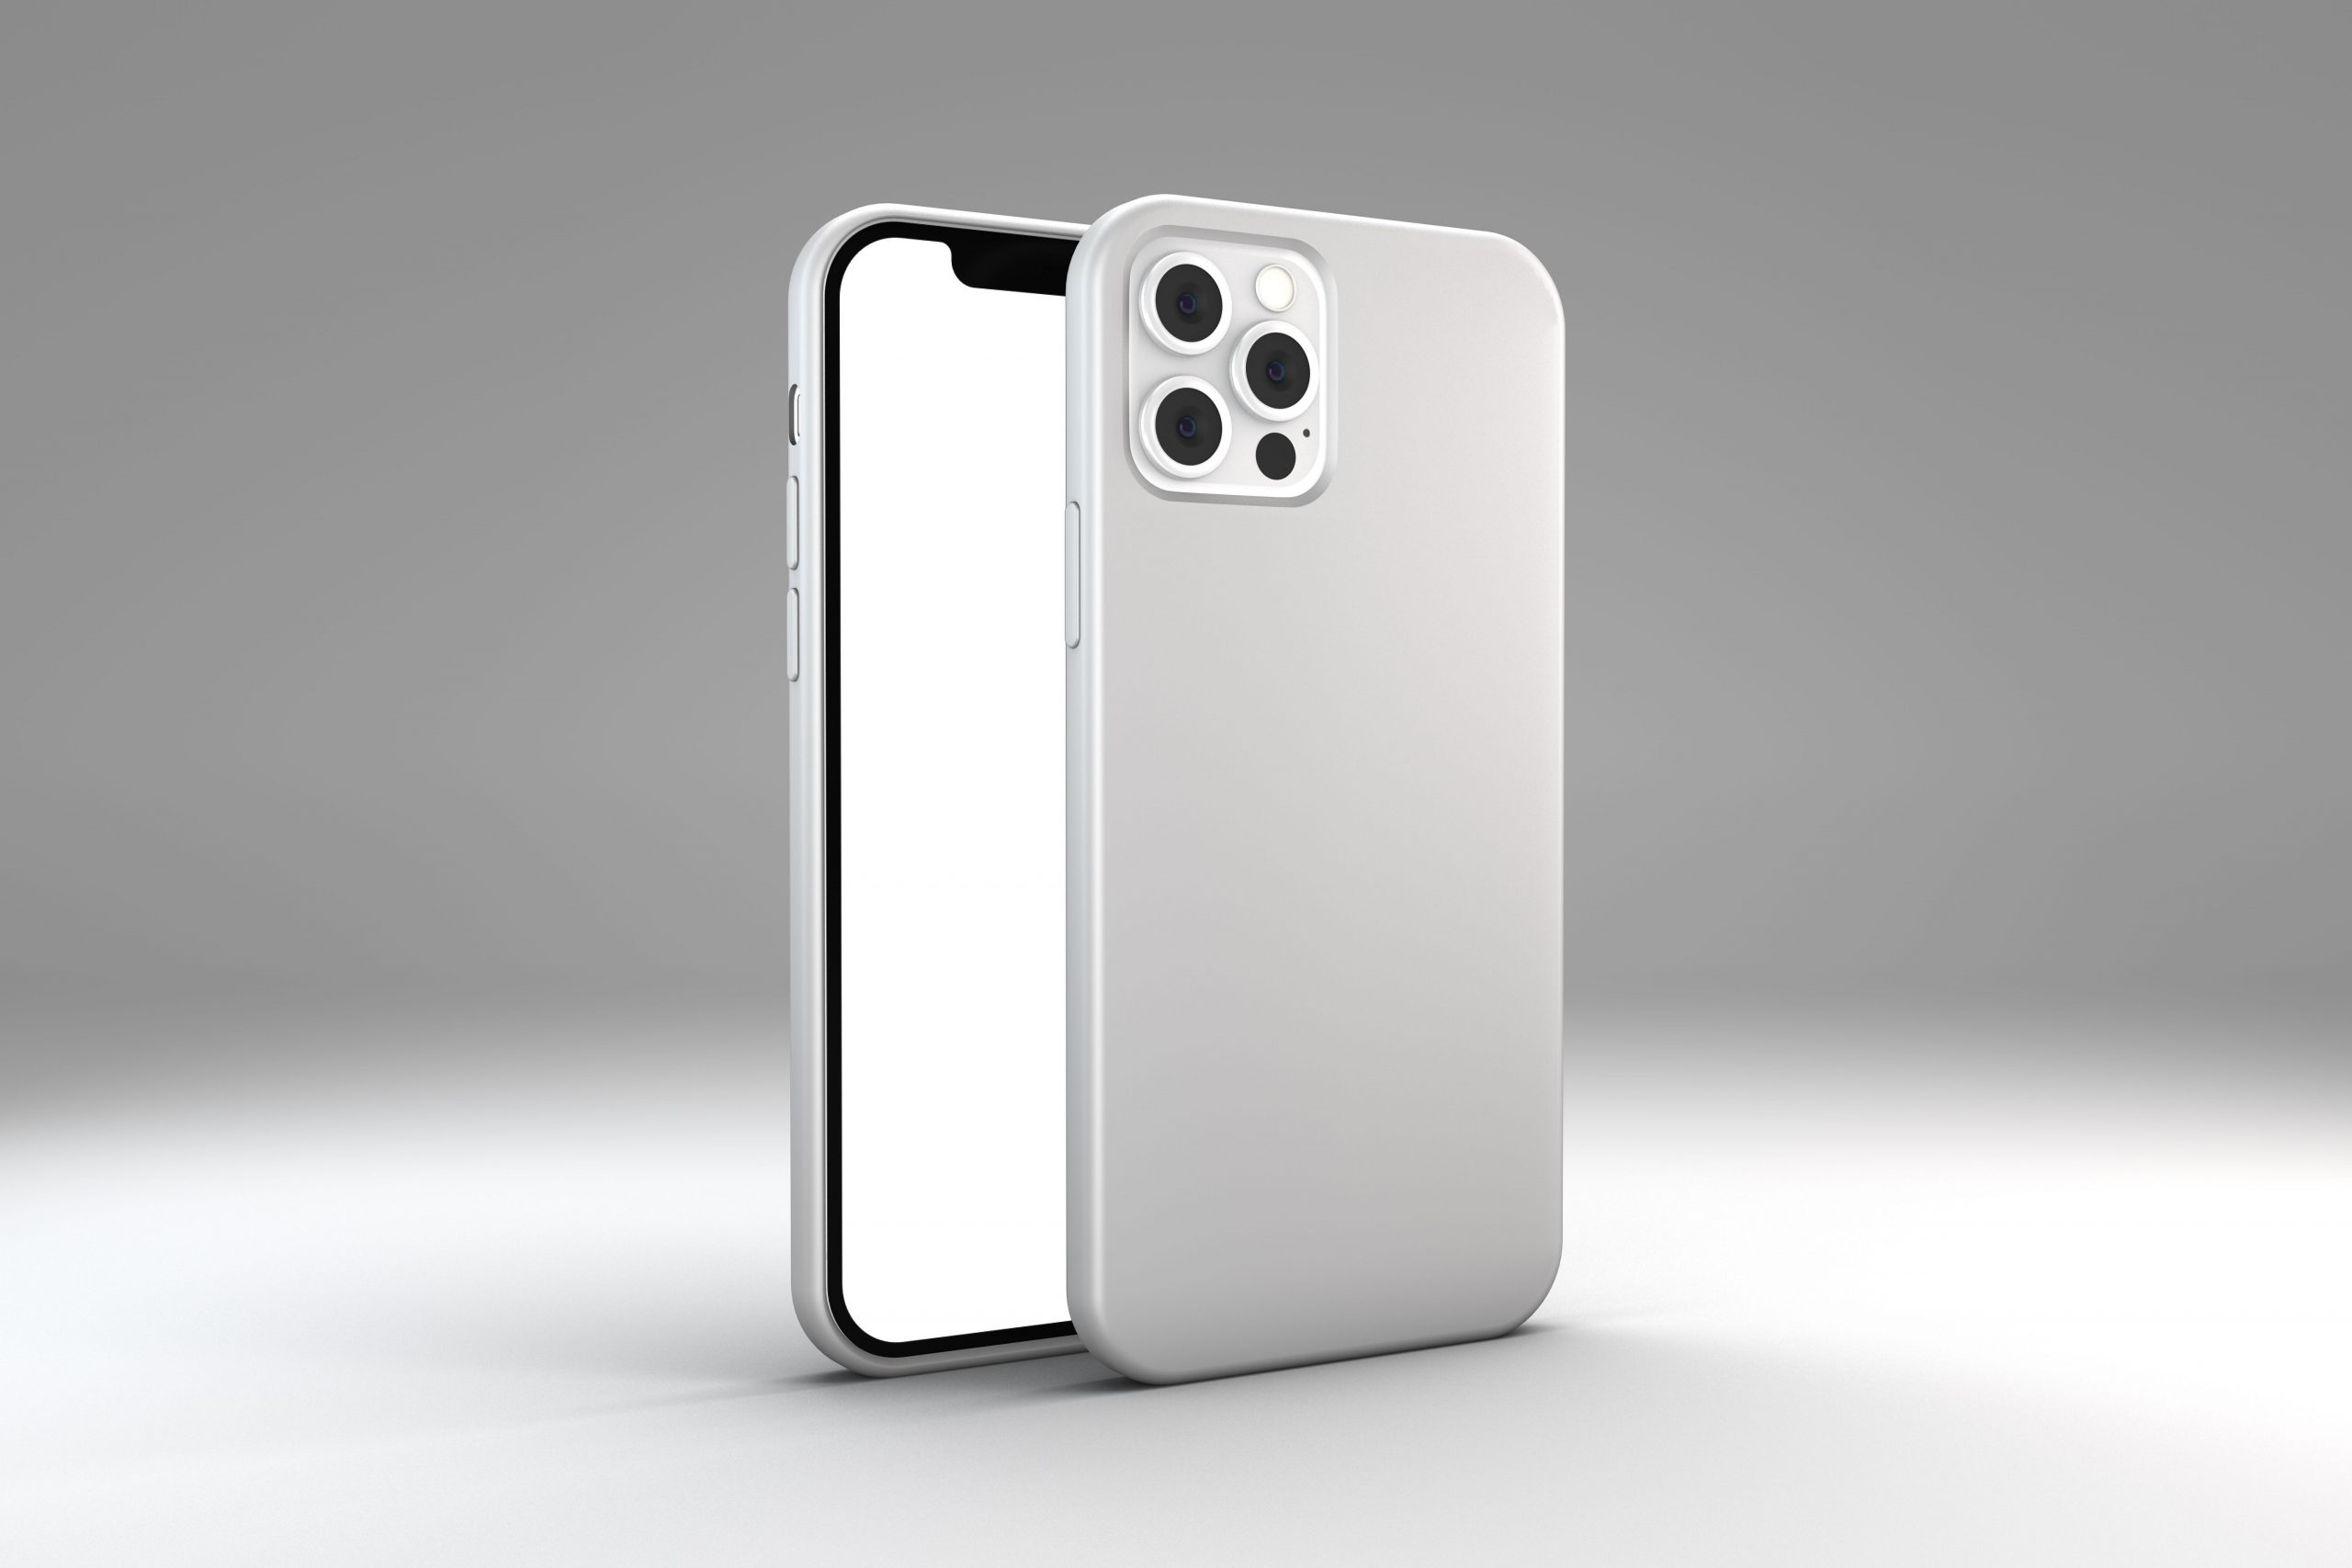 Best iPhone 12 Cases for Protection